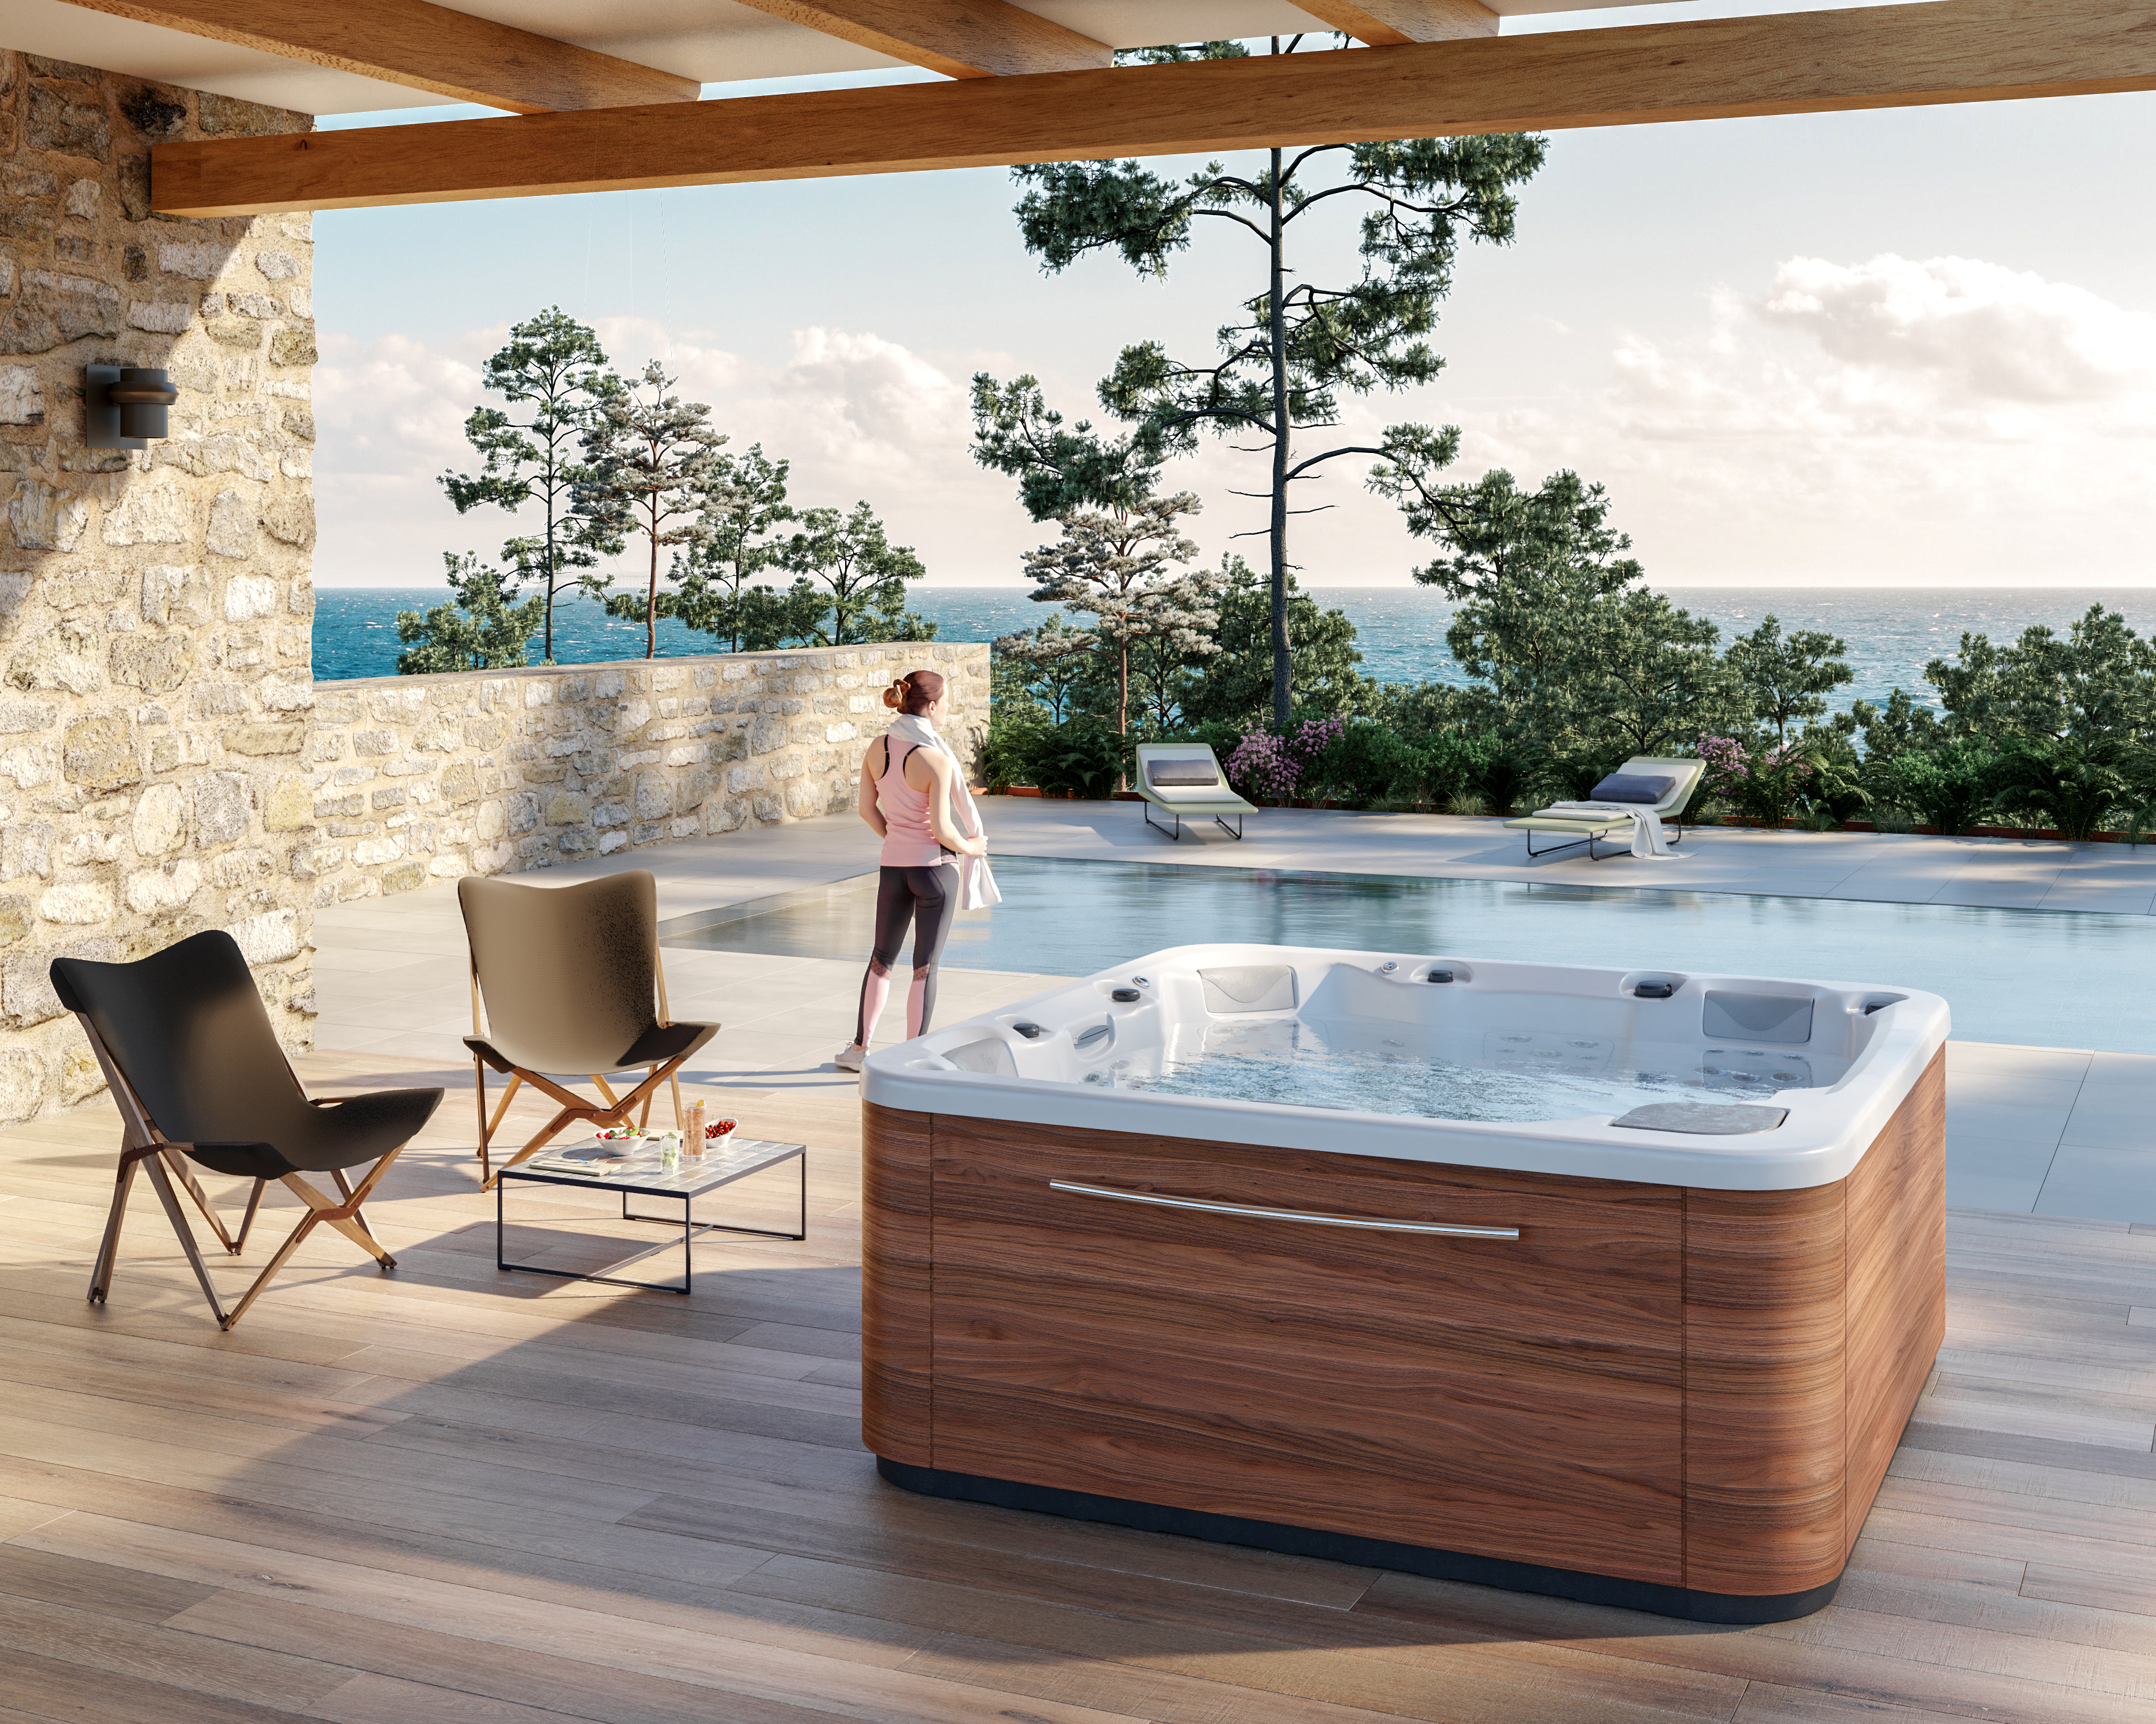 Jacuzzi Interior.Essence Hot Tub 5 Person Jacuzzi For Indoor And Outdoor